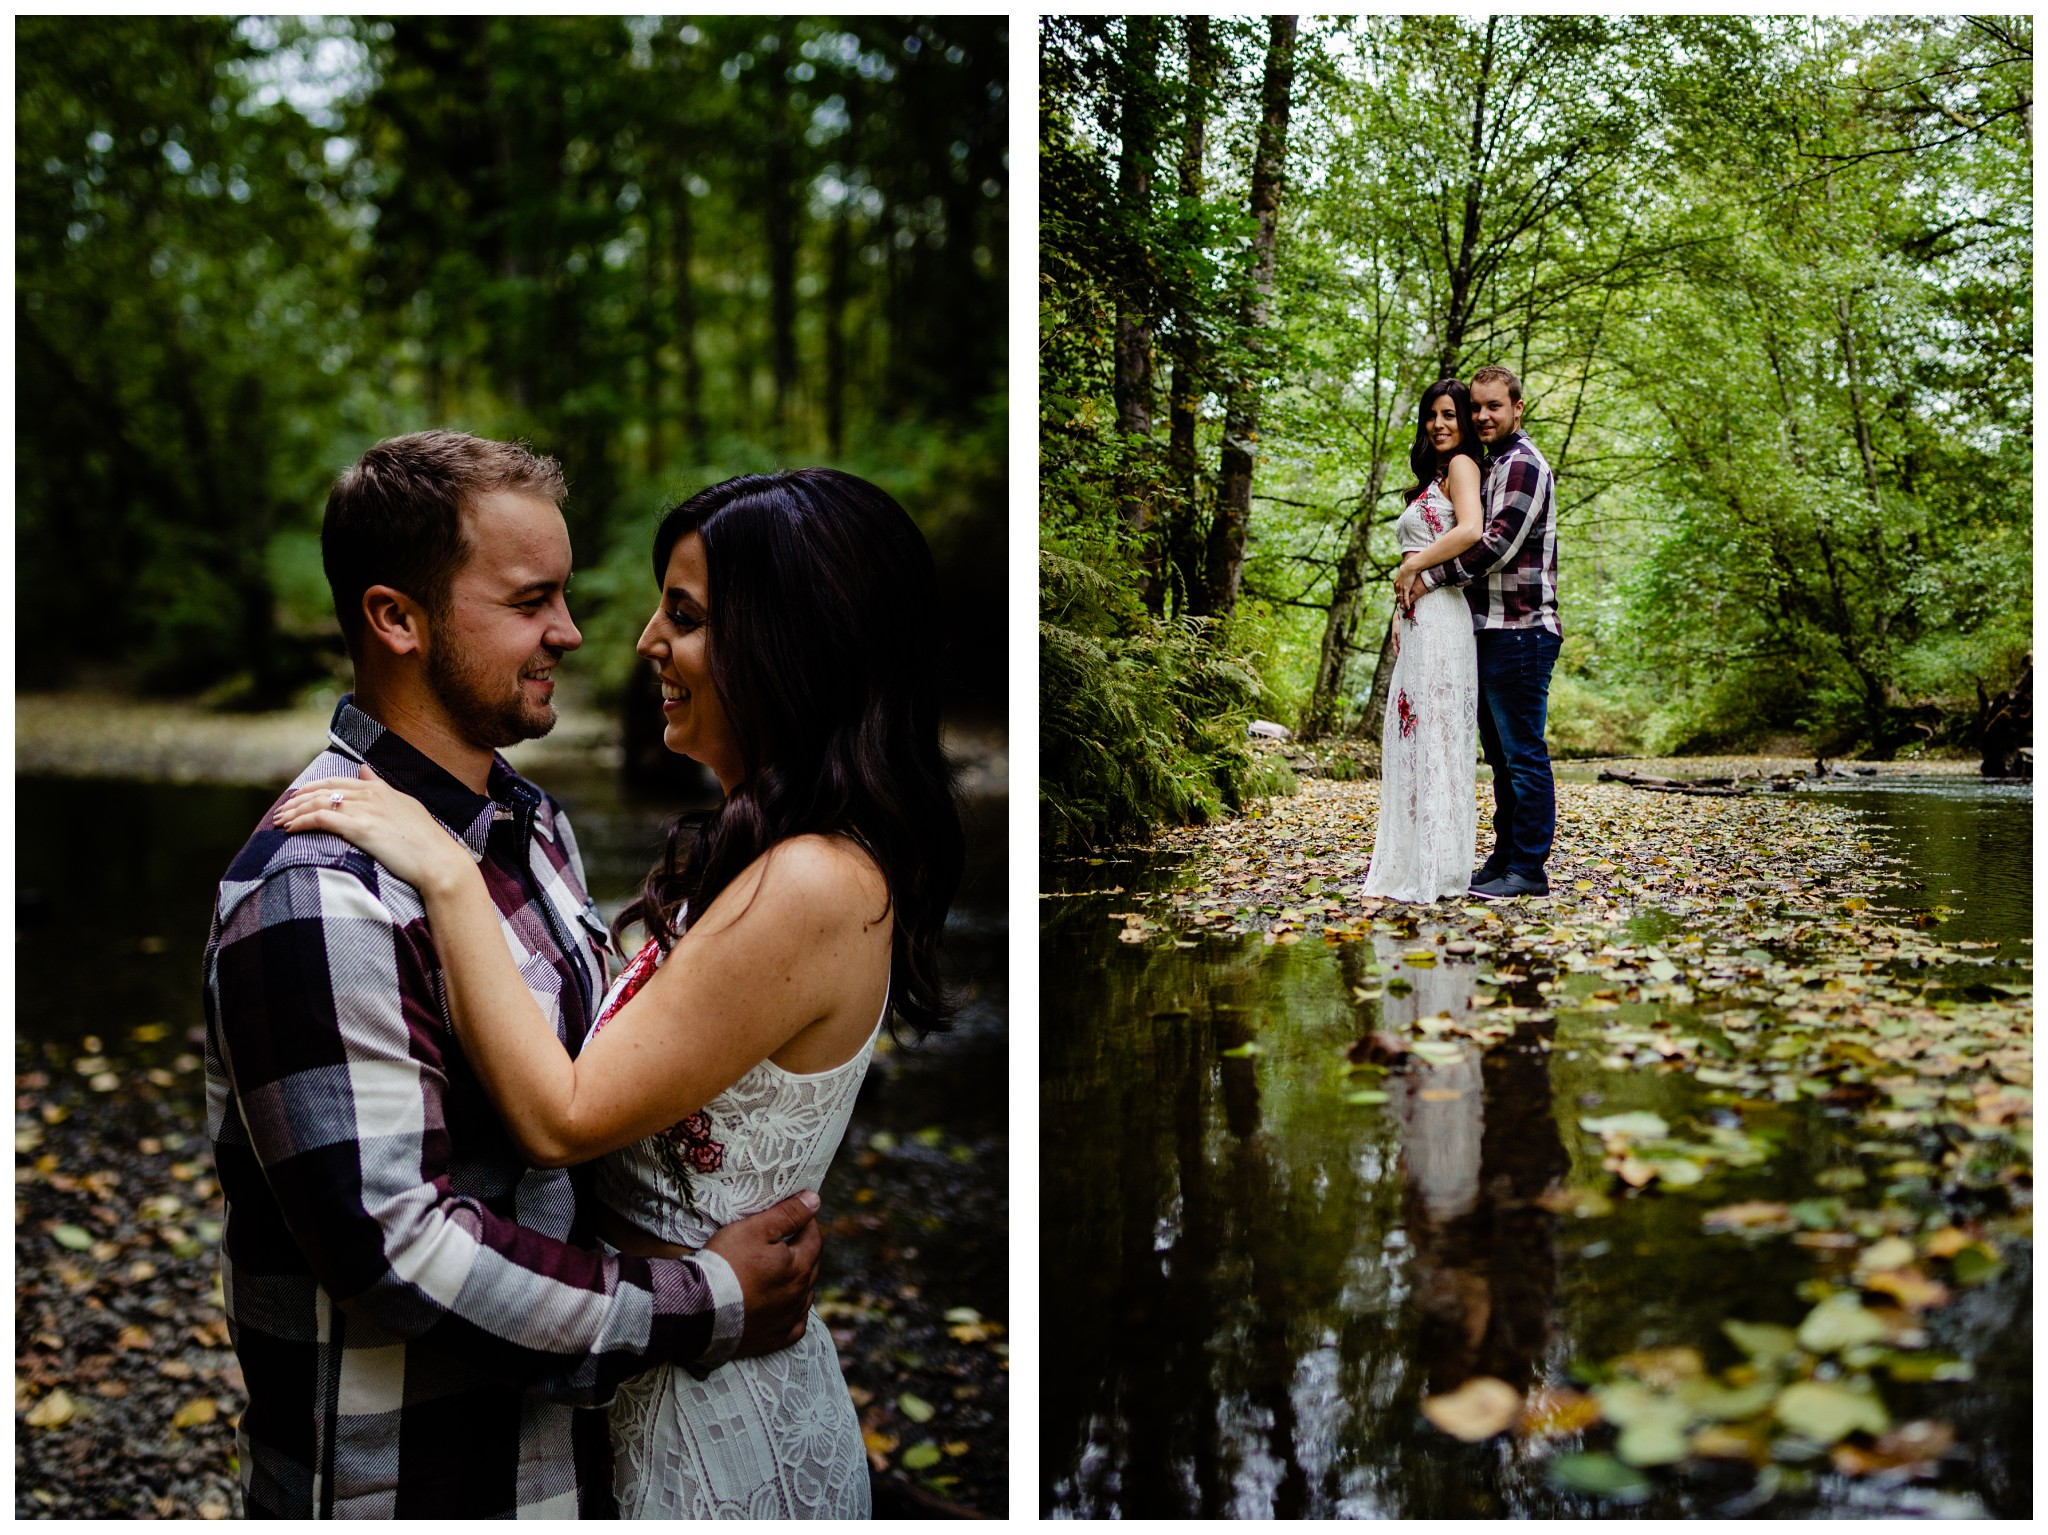 Williams Park Aldergrove Engagement Photographer Moody Fall Couple River Water Romantic Pose Yellow Leaves White Dress Dark_0005.jpg